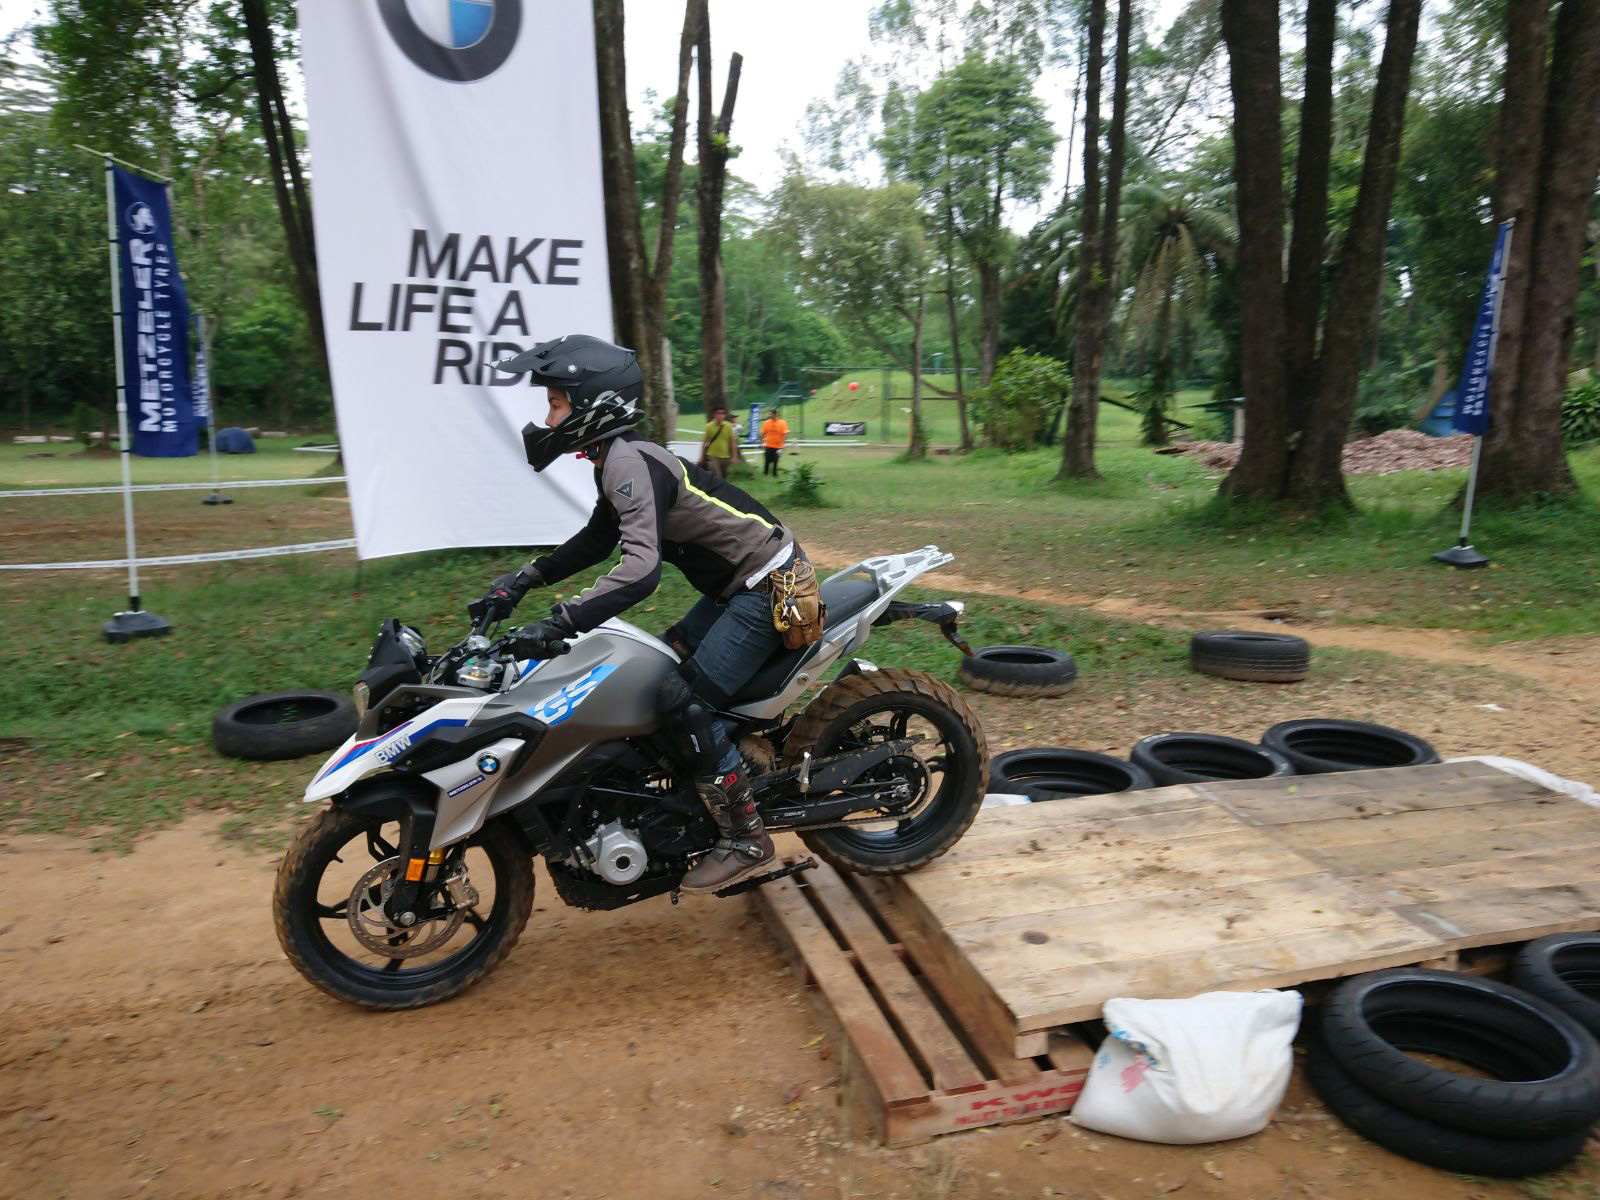 BMW G310GS in action